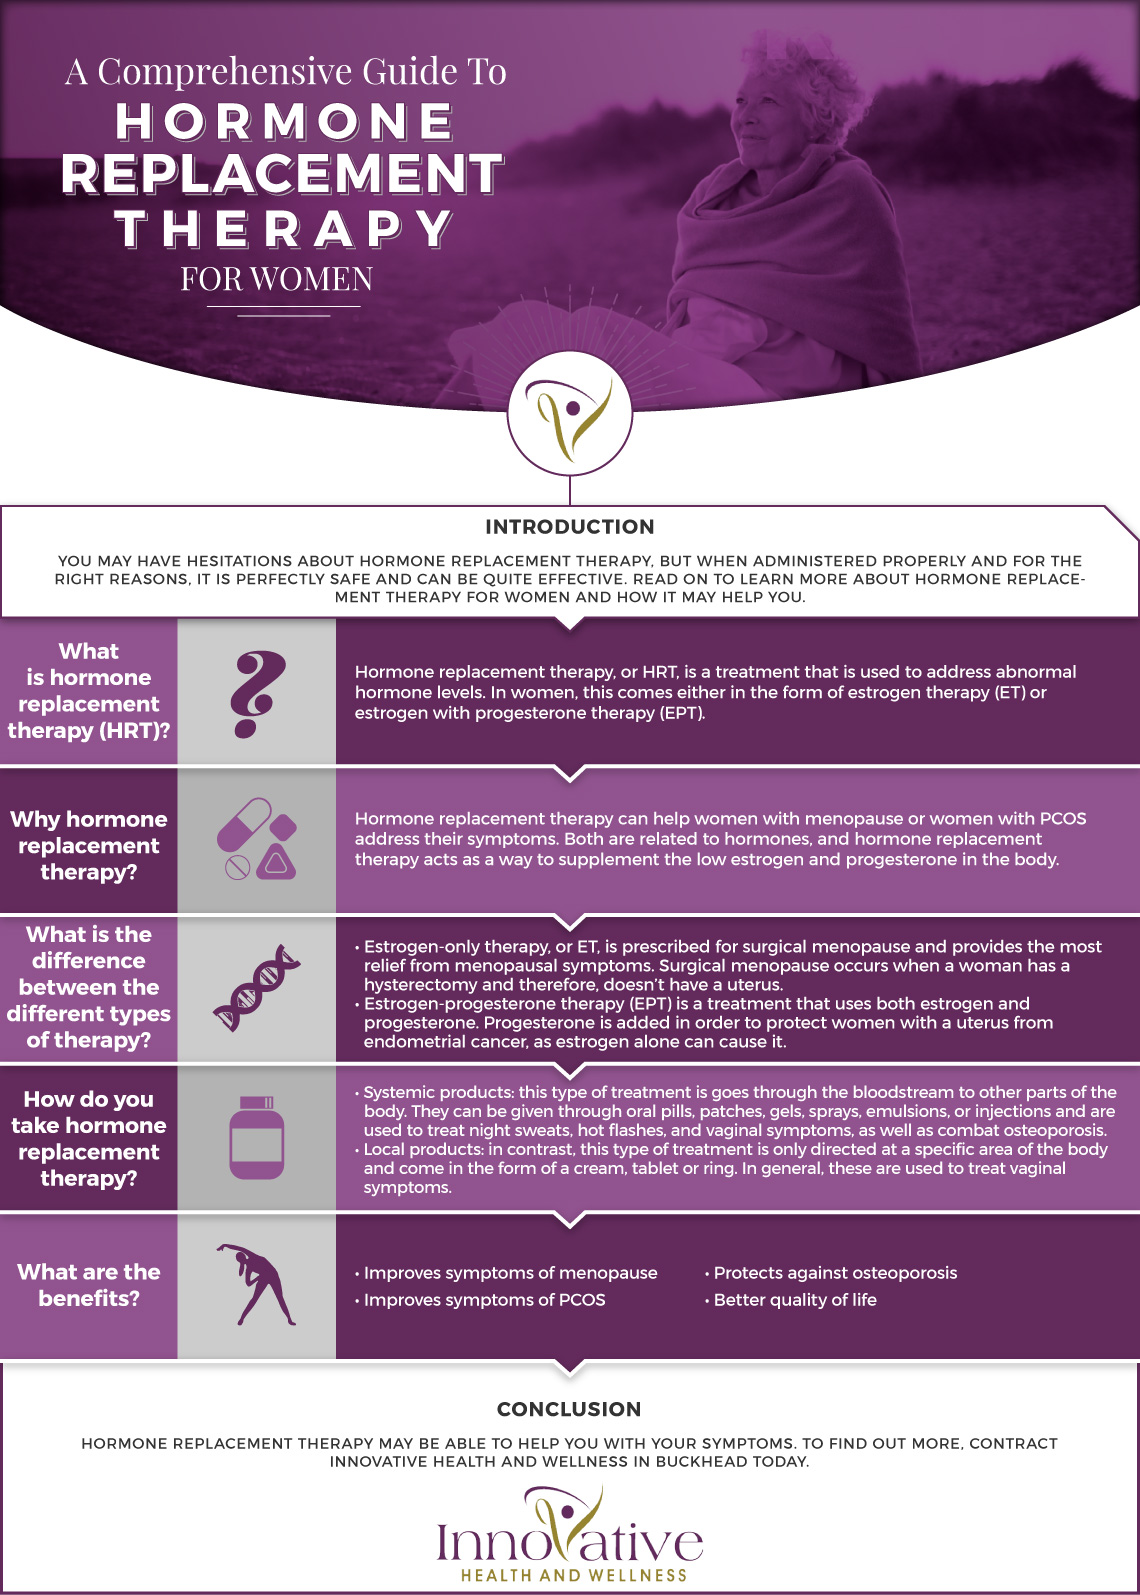 A Comprehensive Guide to Hormone Replacement Therapy for Women